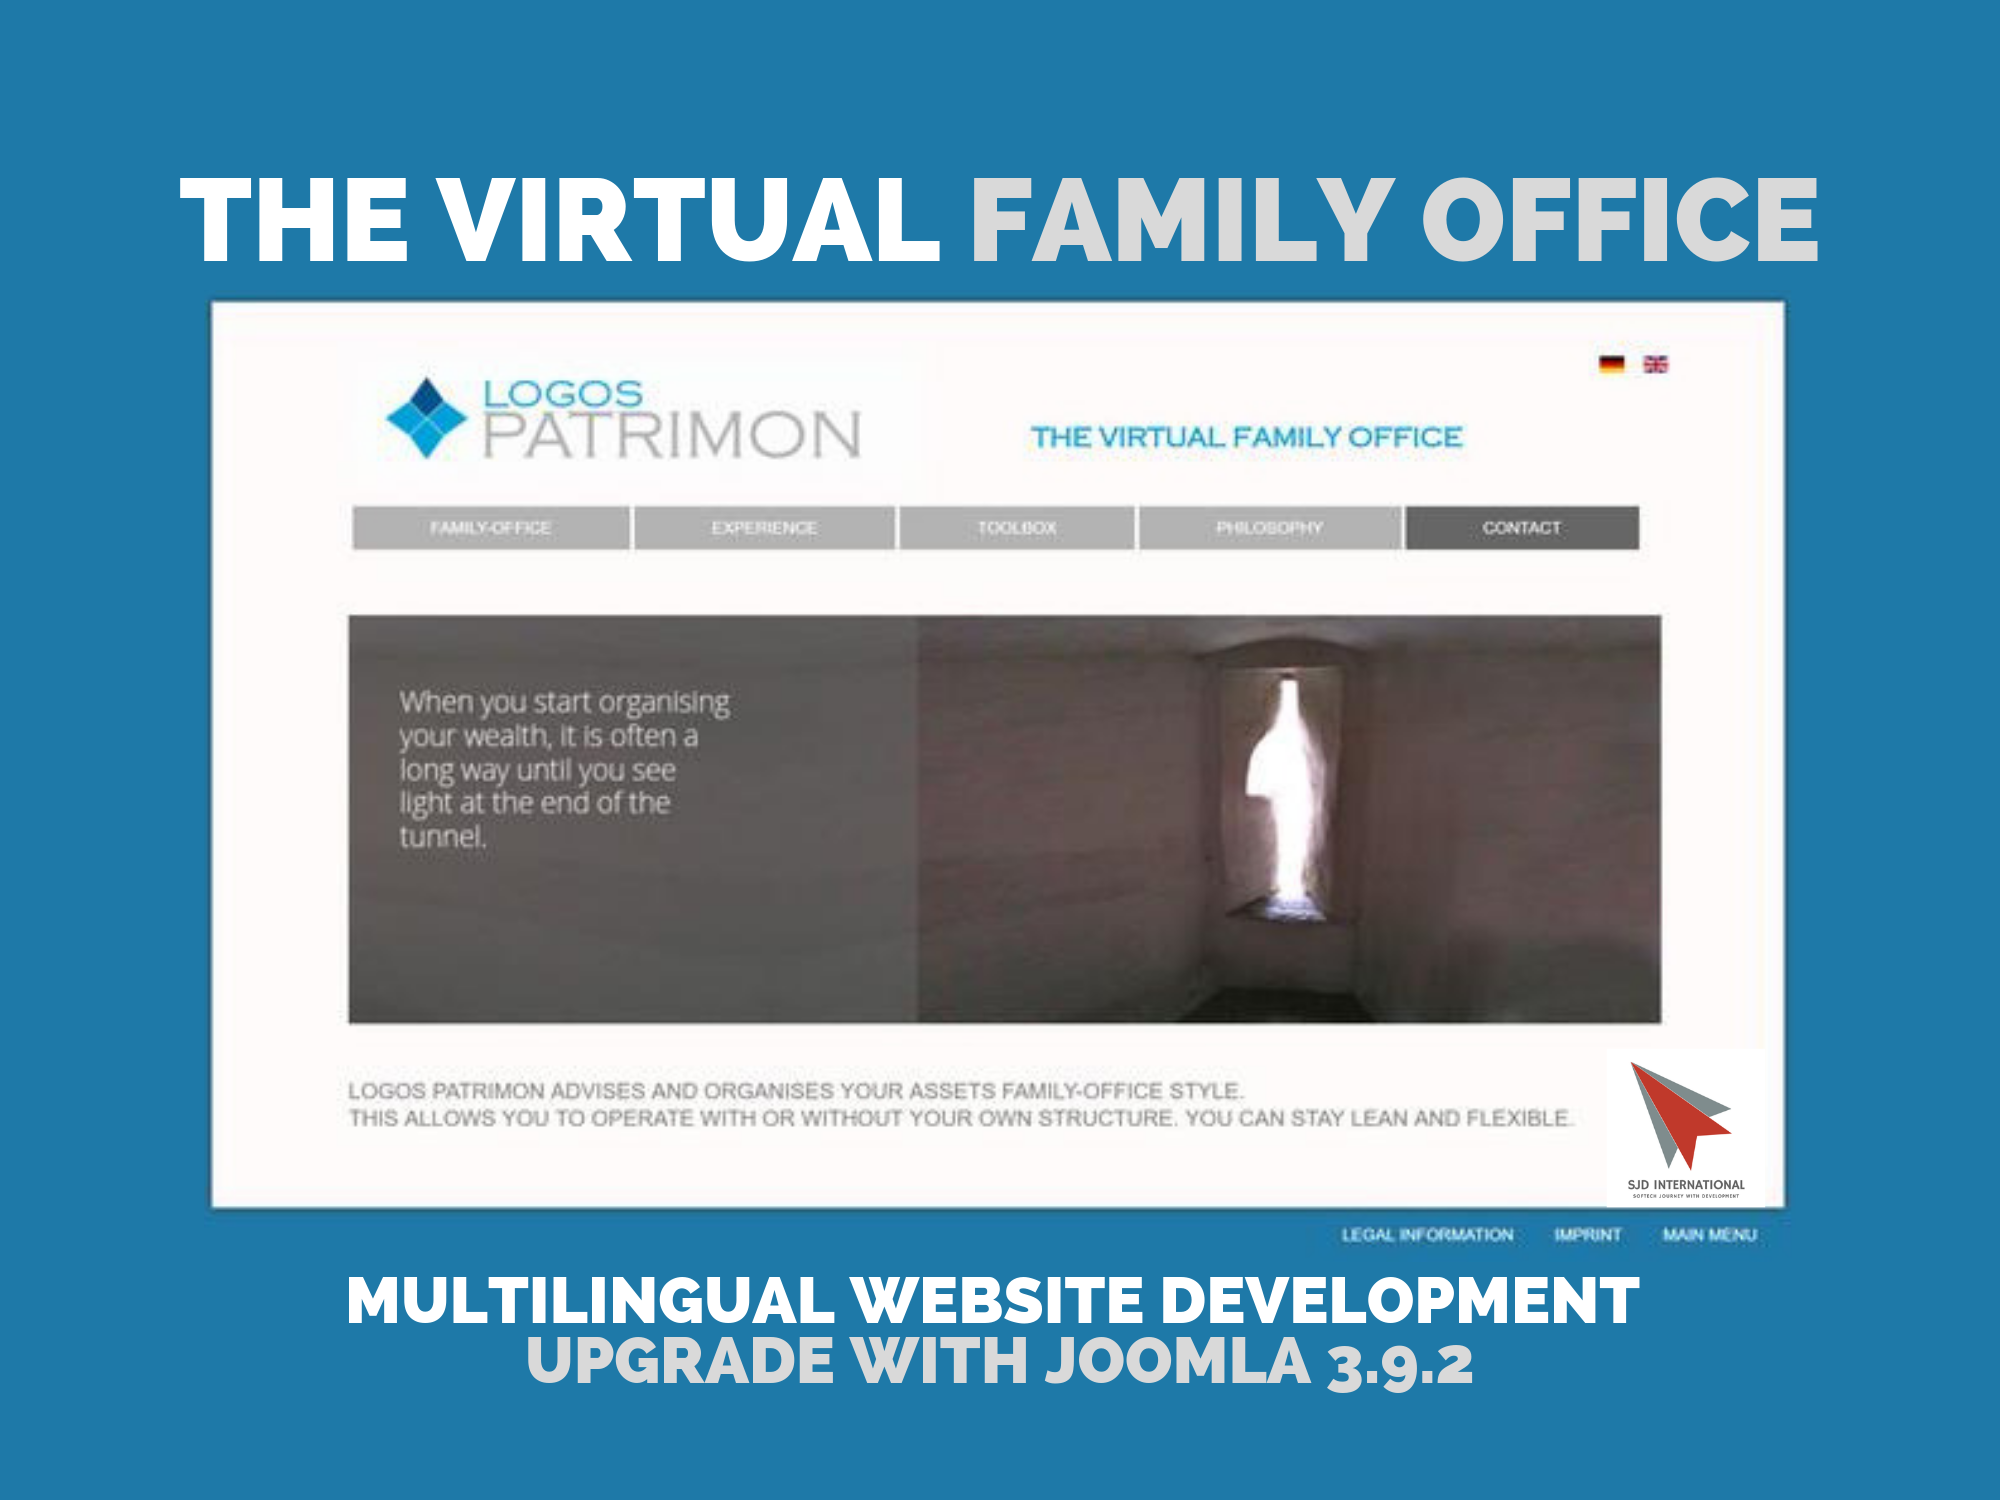 The Virtual Family Office